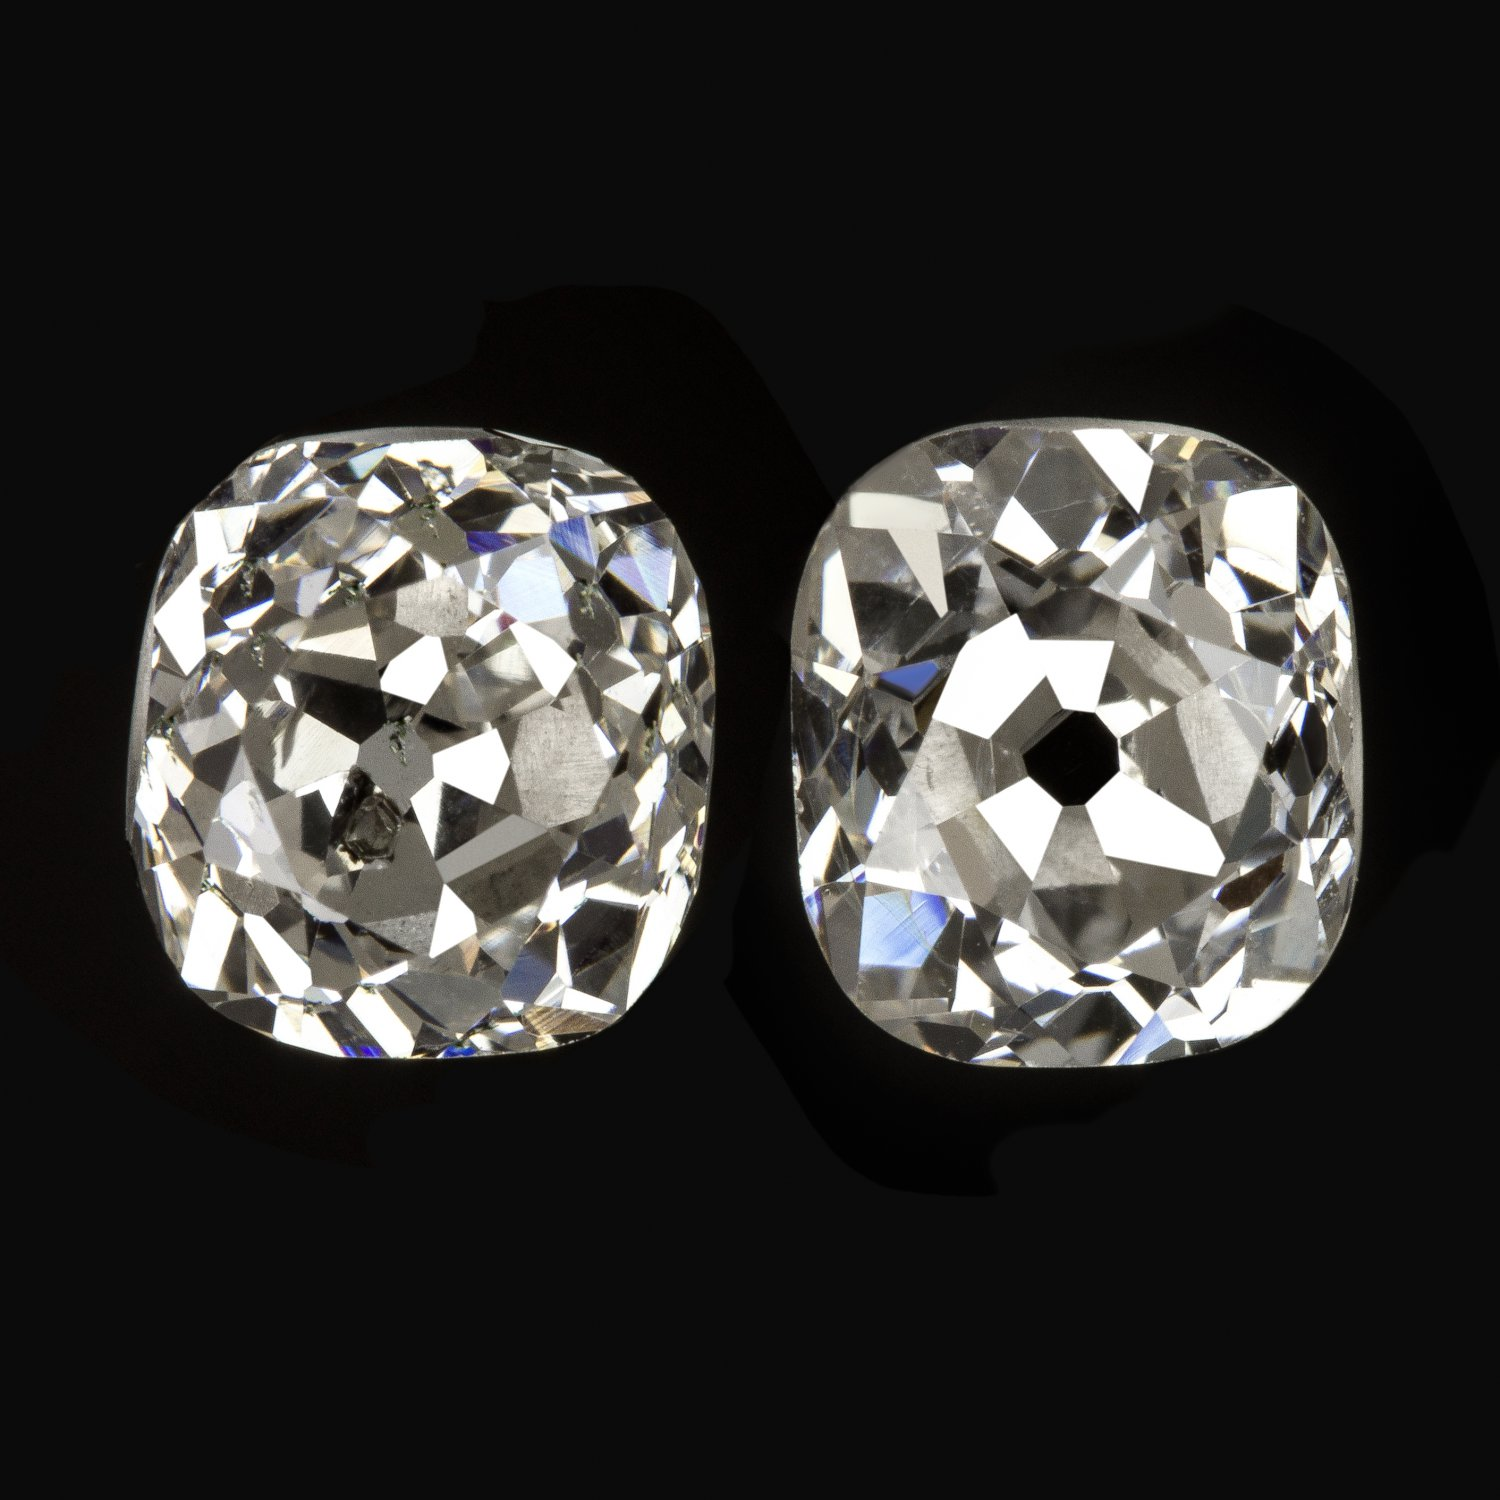 1.40ct VINTAGE OLD MINE CUSHION CUT DIAMOND STUD EARRING ANTIQUE GREEN INCLUSION